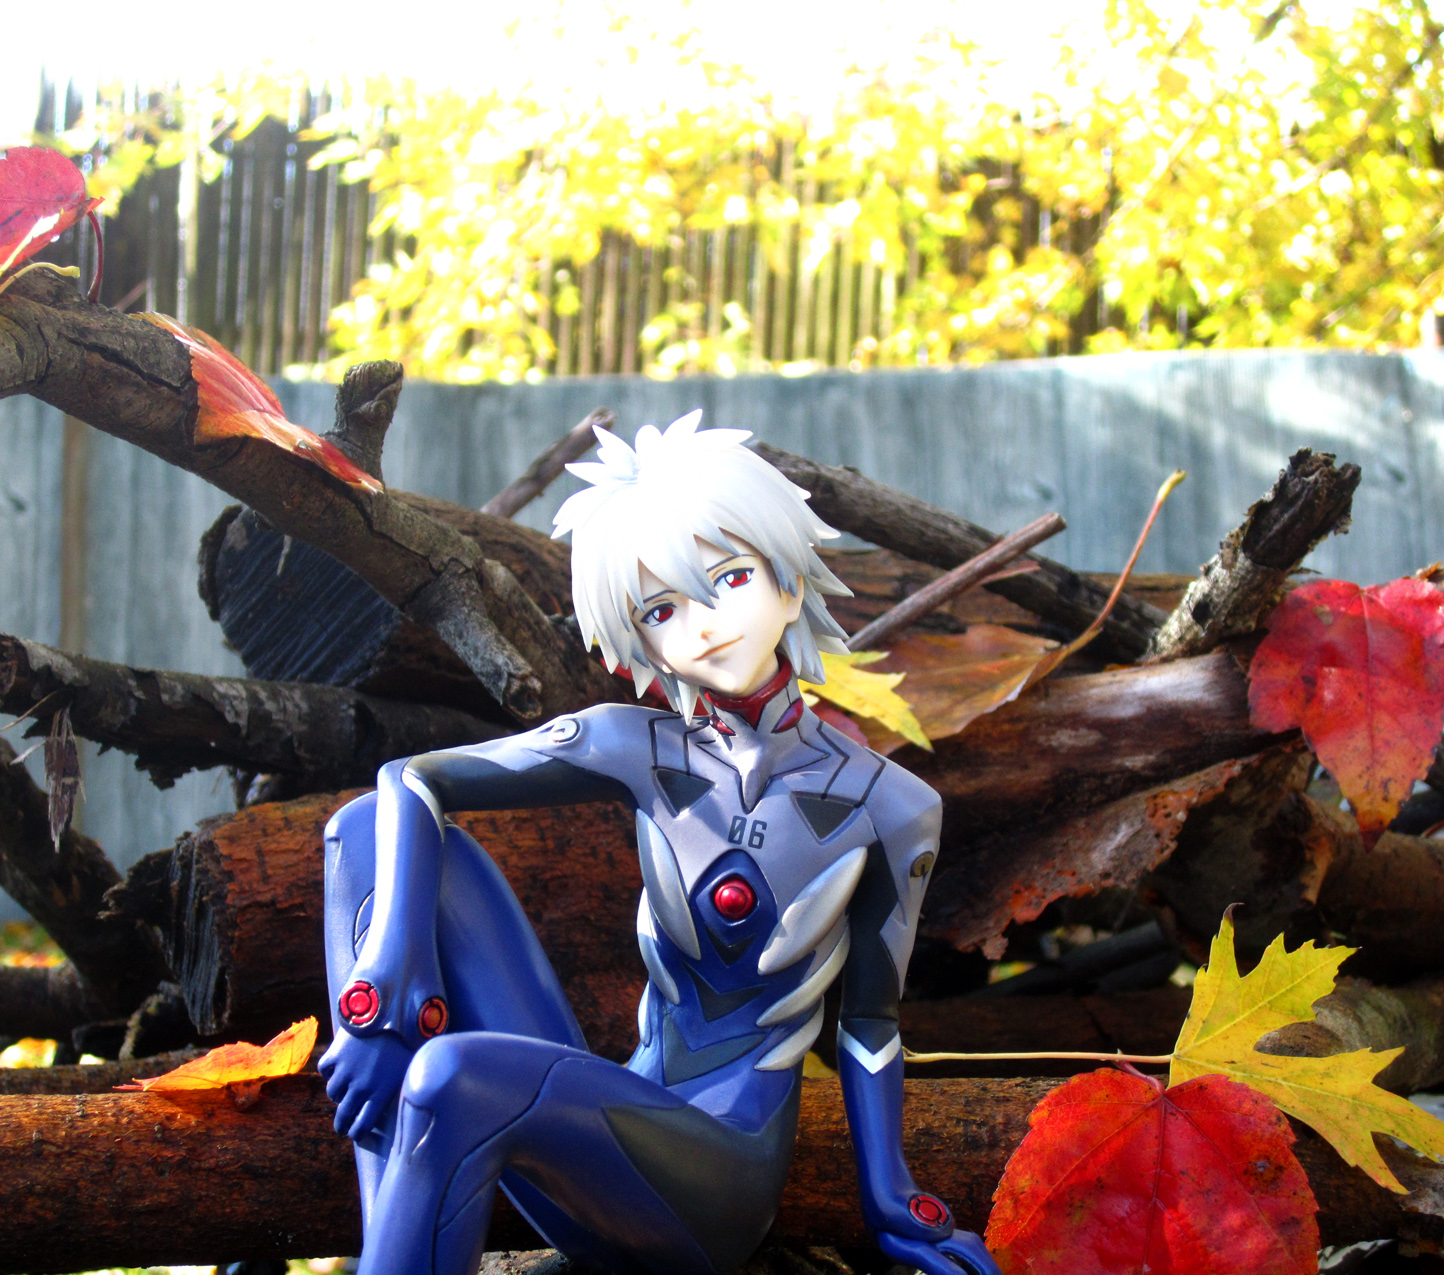 red_eyes clear_hair plugsuit silver_hair kotobukiya leaves autumn evangelion_shin_gekijouban shirahige_tsukuru nagisa_kaworu